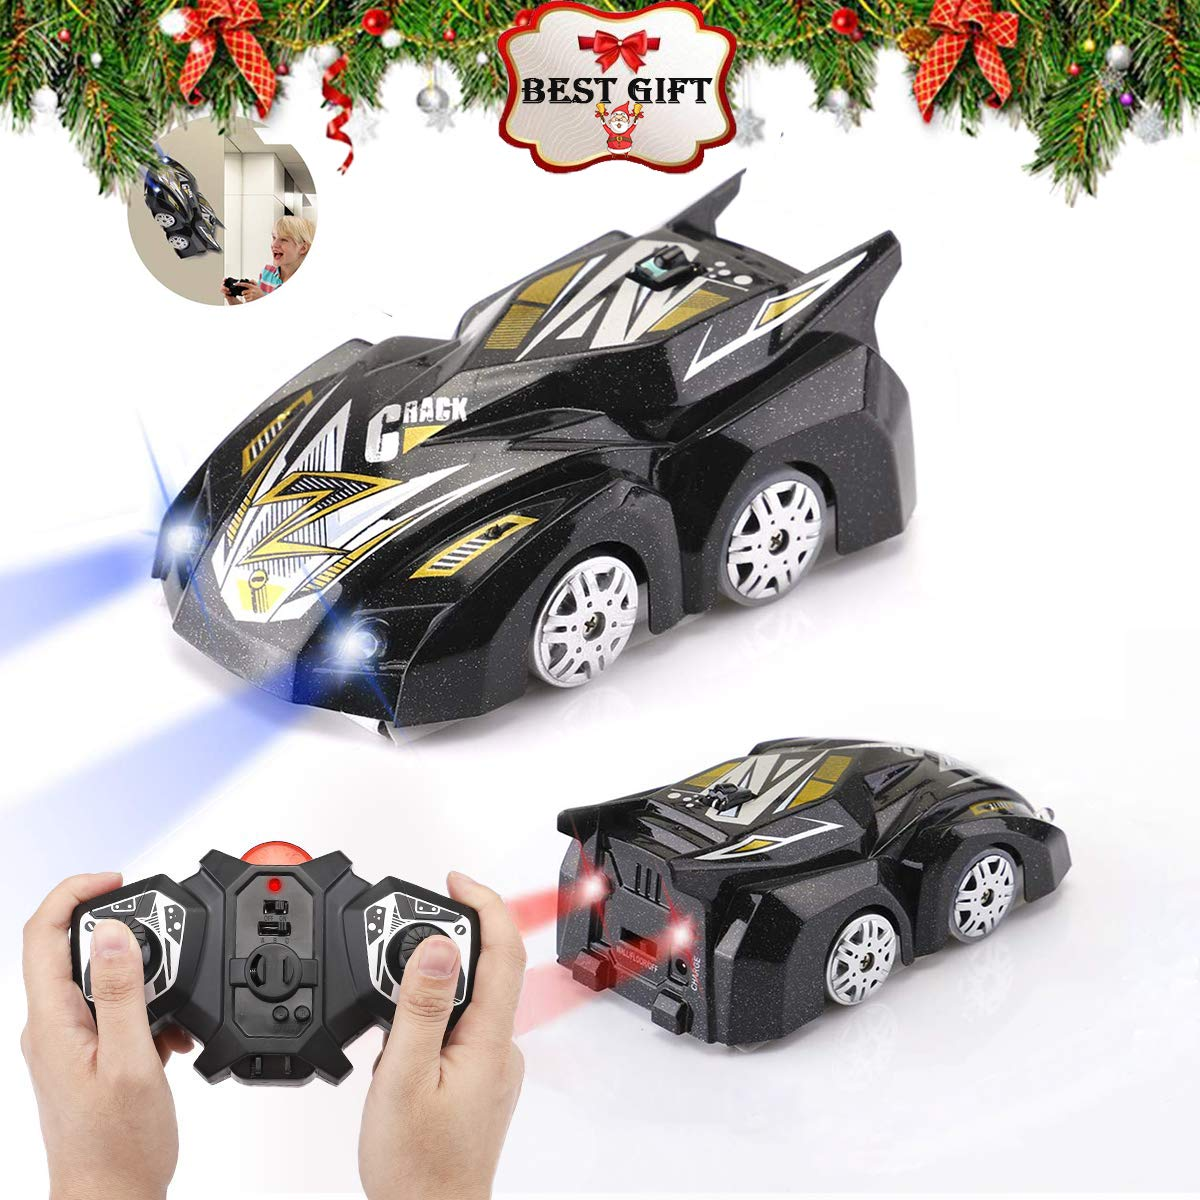 LBLA Remote Control Wall Climbing Car Toy Dual Modes 360/° Rotating Stunt Racing Car Flip Gravity Defying Racing Vehicle Rechargeable Wall Climbing RC Car Gift for Kids Adult Black